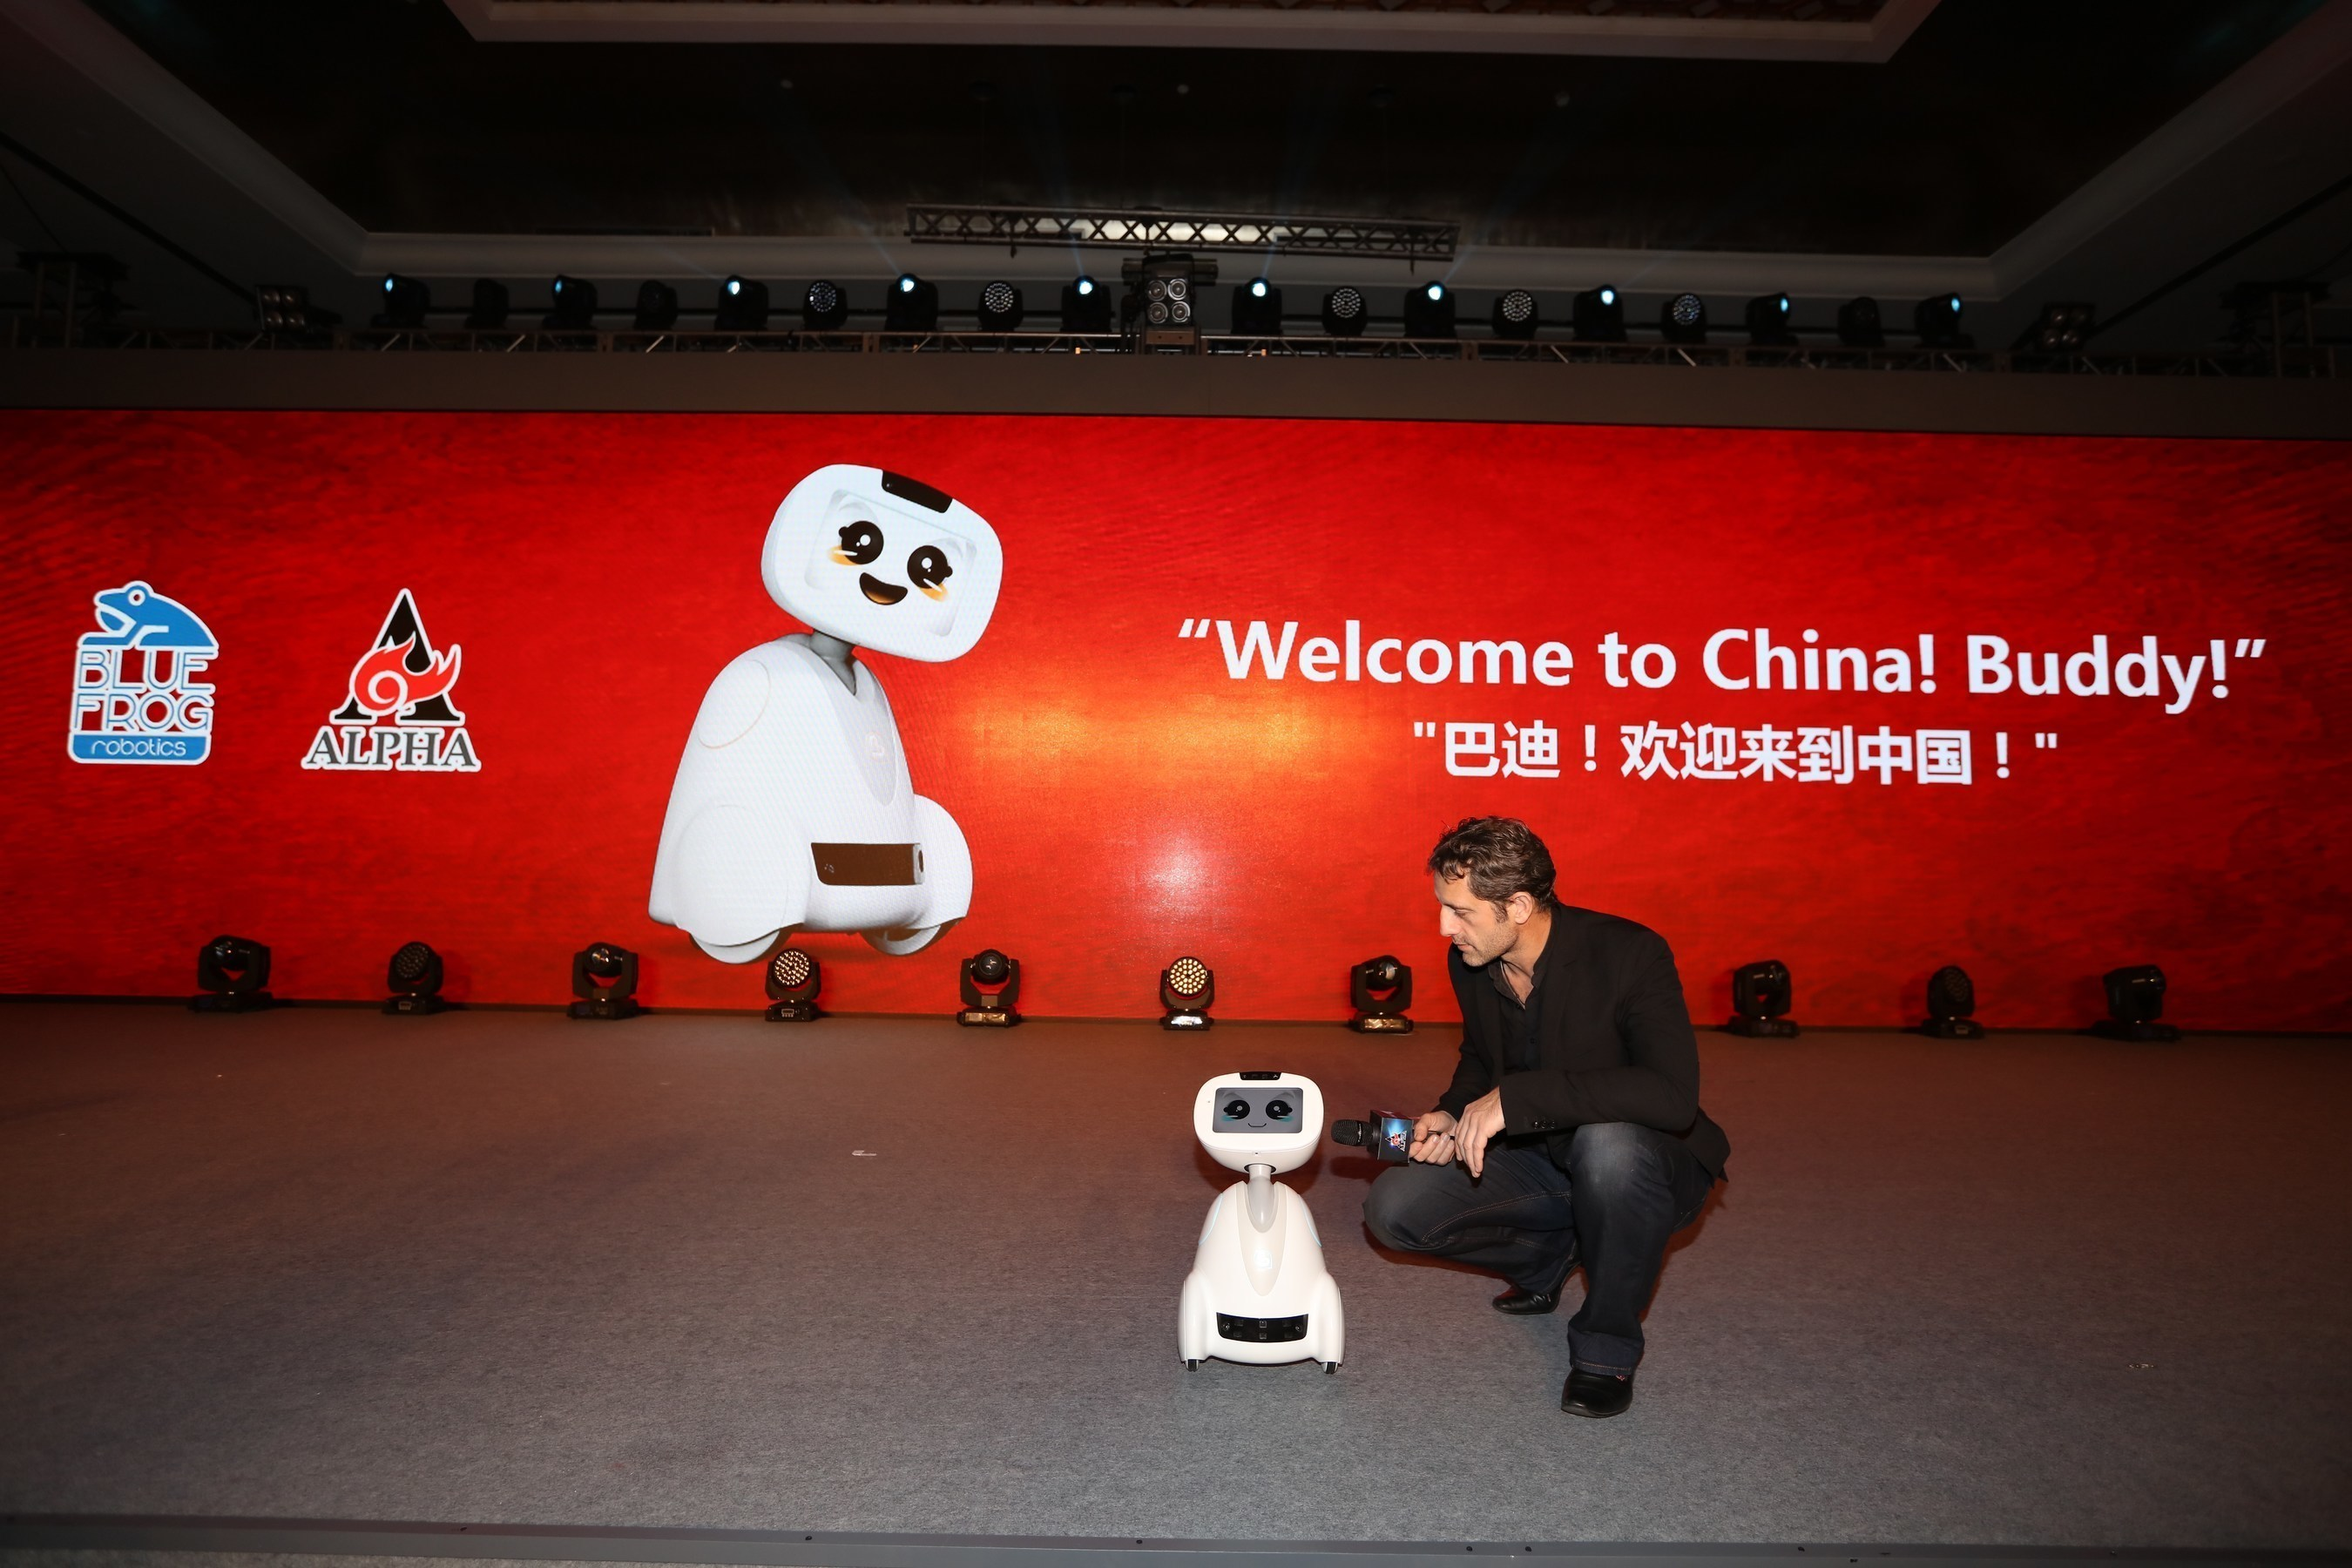 Alpha, Turing Robot, and Blue Frog Robotics to Build China's First 'Smart Home Ecosystem'